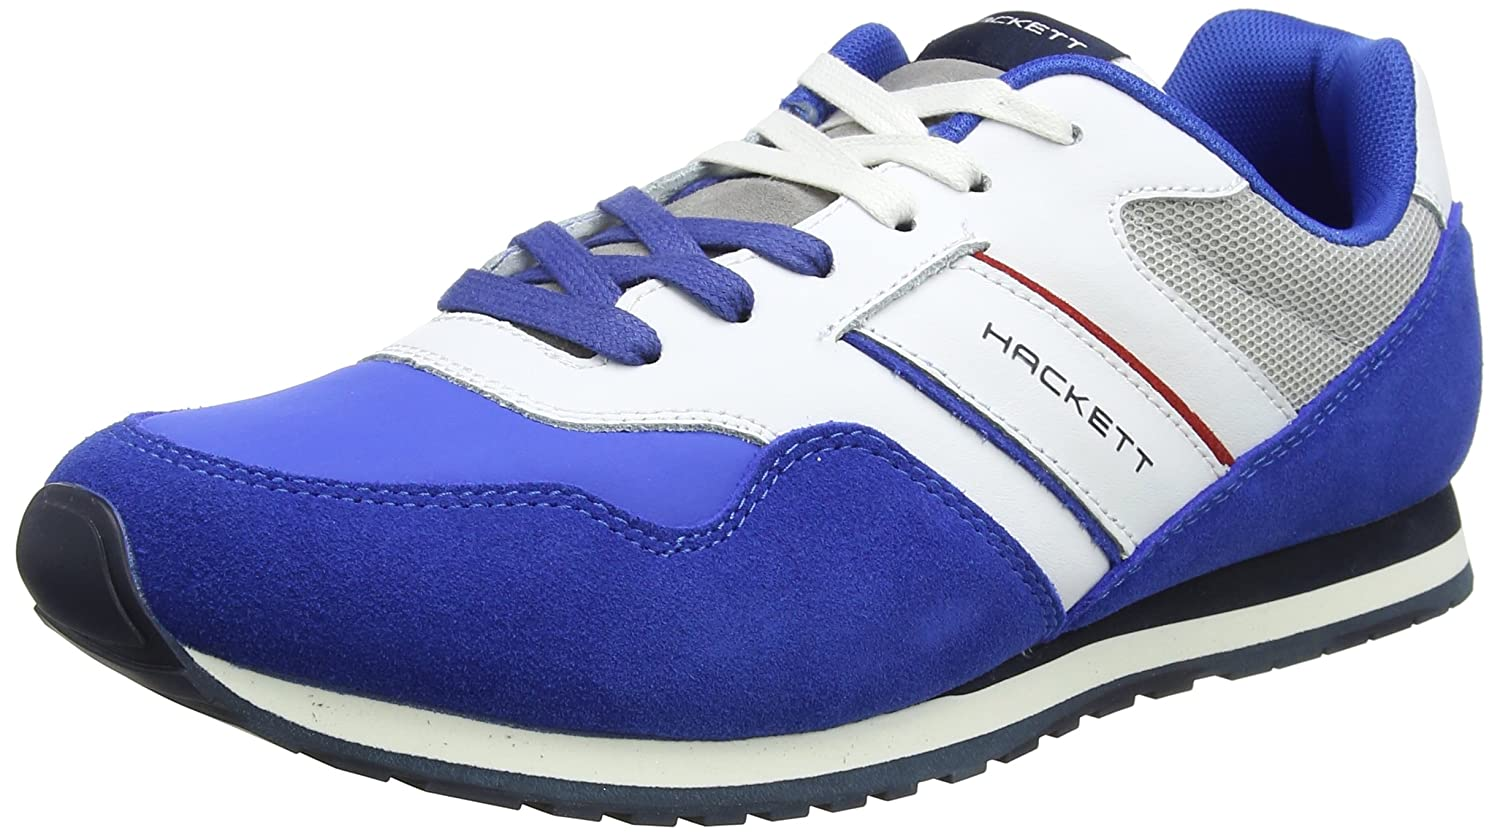 TALLA 43 EU. Hackett London Pro Team Runner, Zapatillas para Hombre